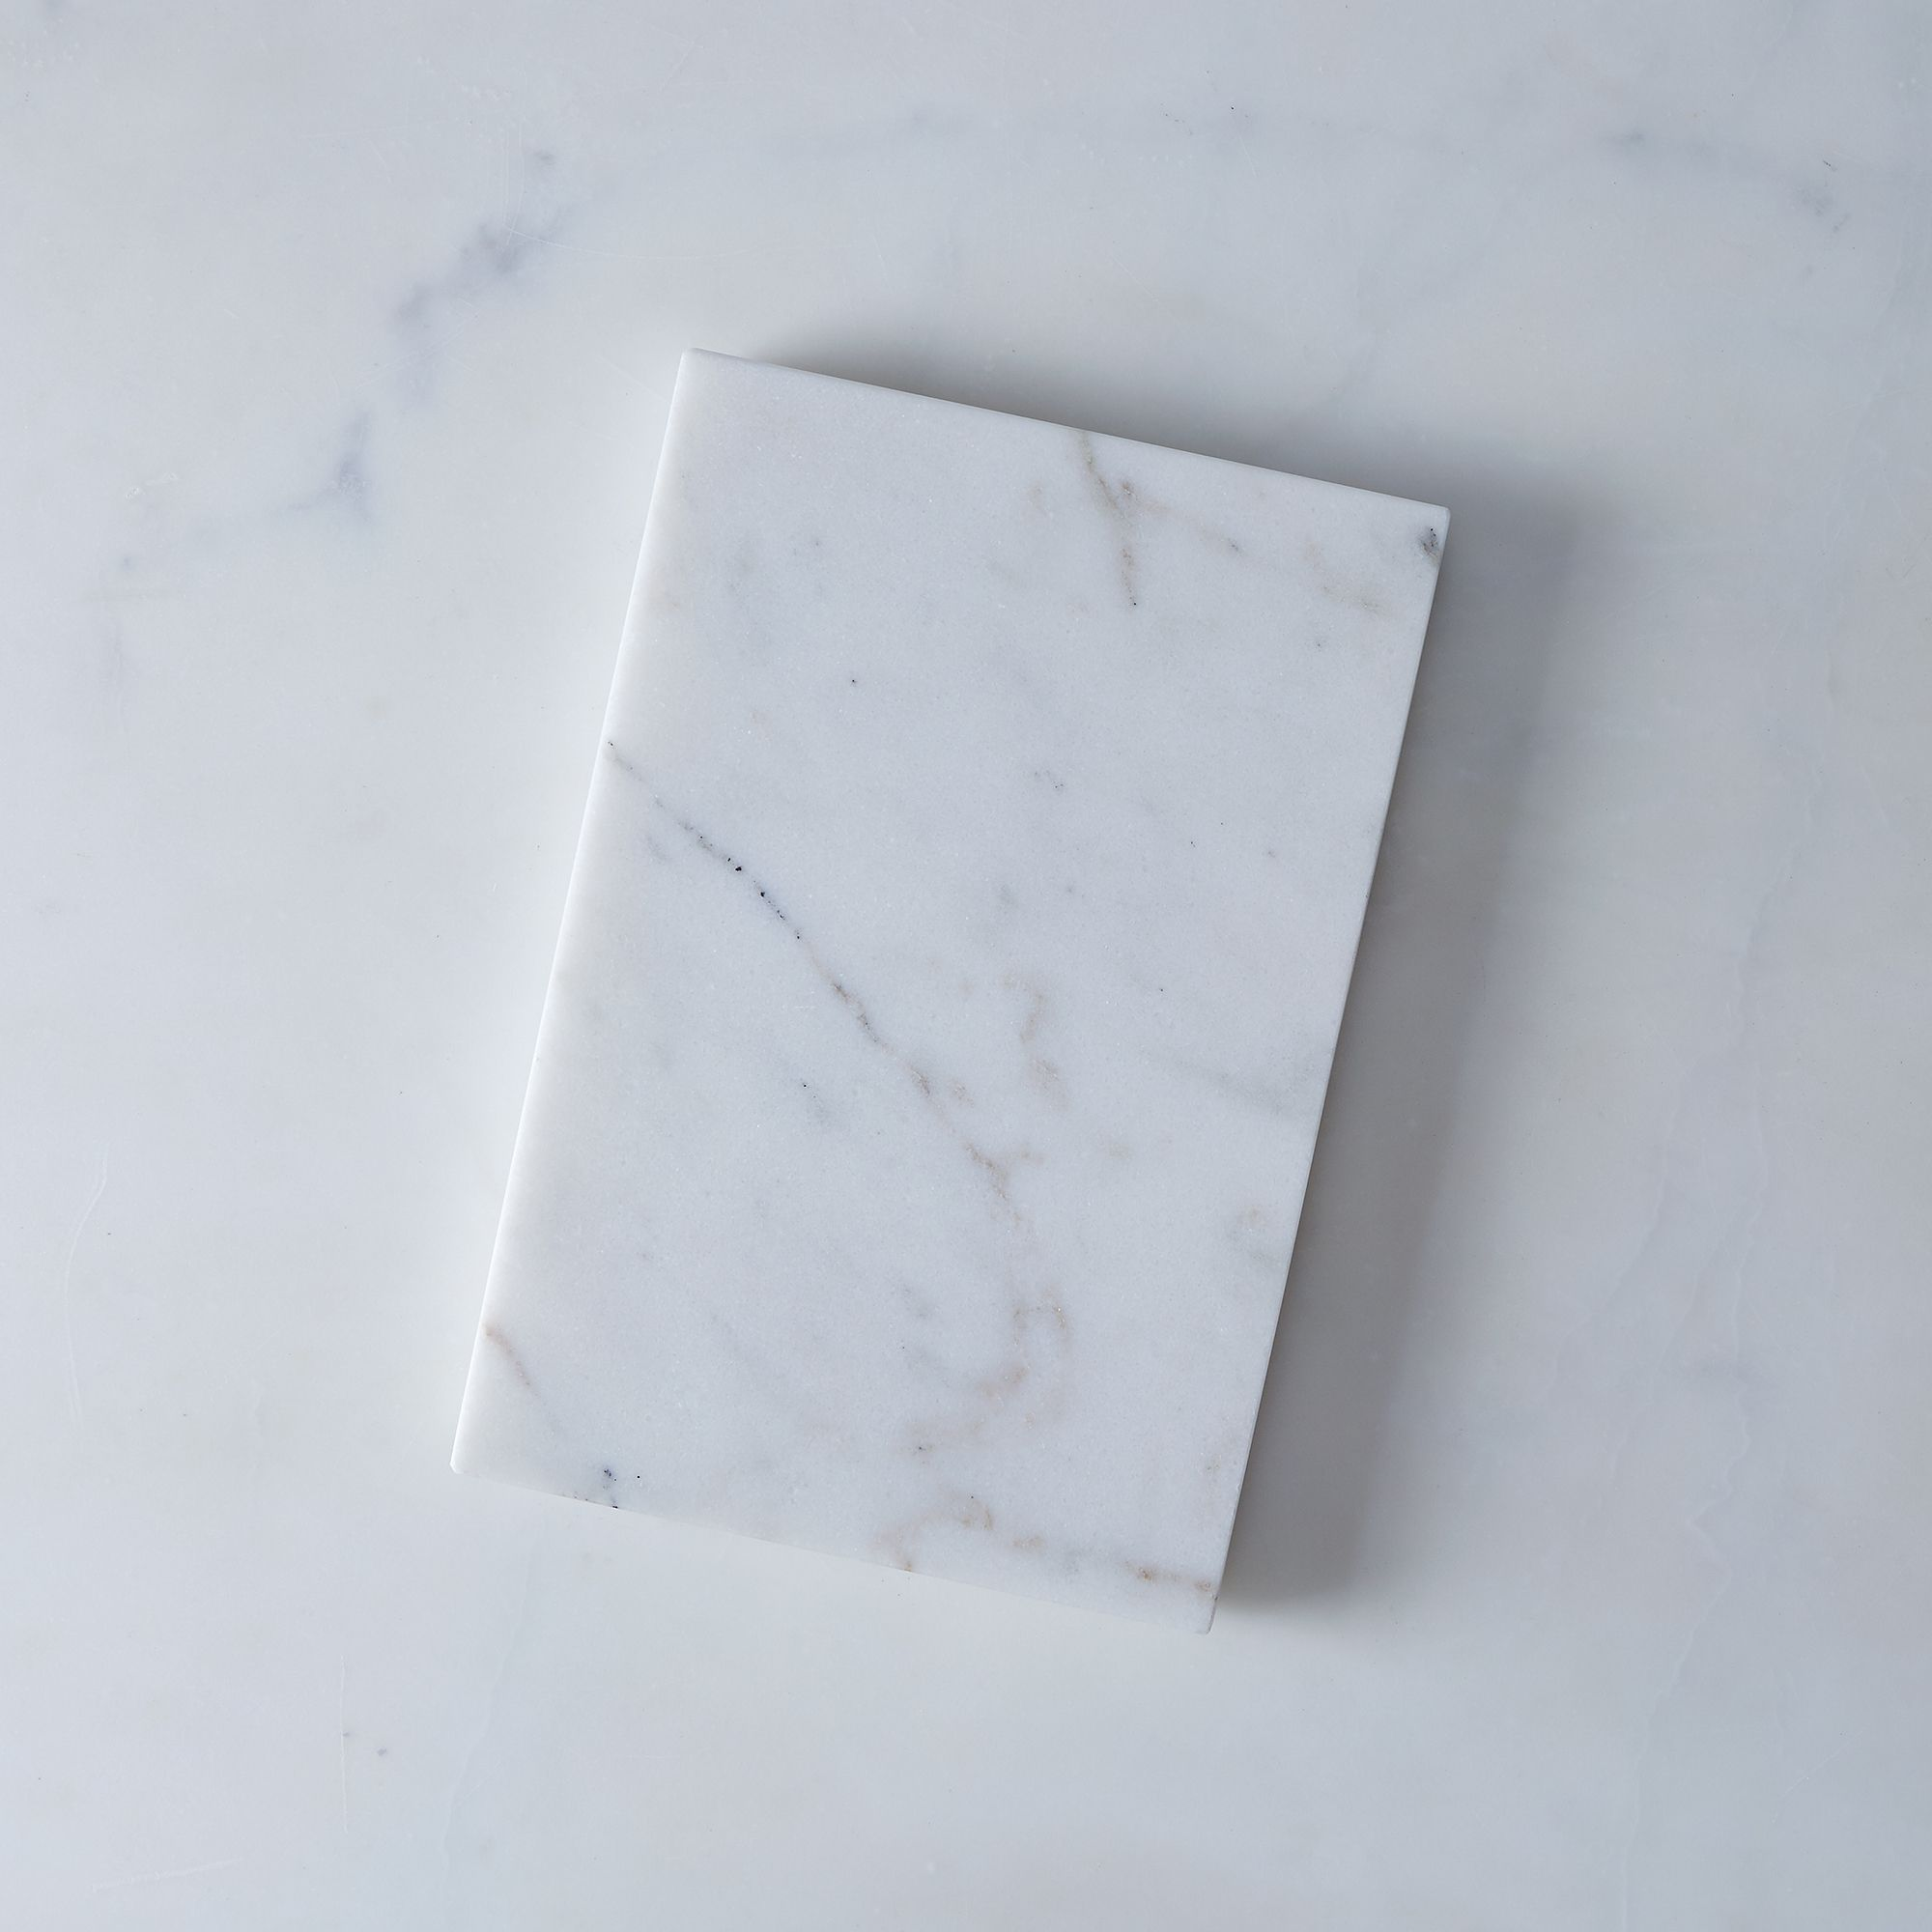 Food52 Marble Board Knives Cutting Boards Vermont Lifestyle On